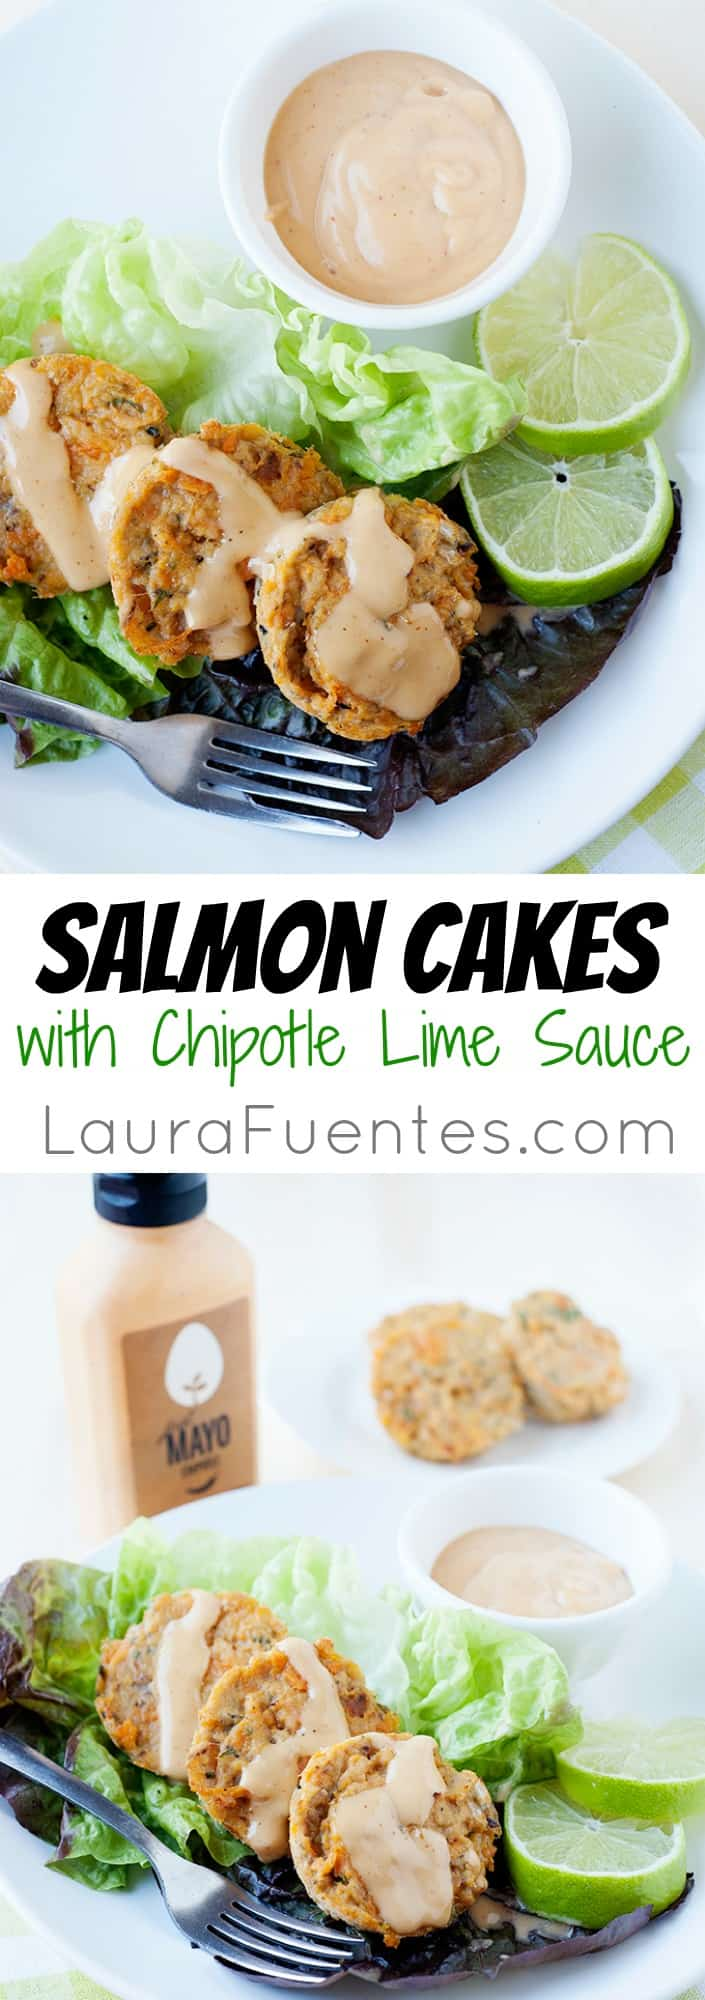 Mouth-watering easy salmon cakes with chipotle lime sauce are the perfect meal when the family is craving crab cakes!